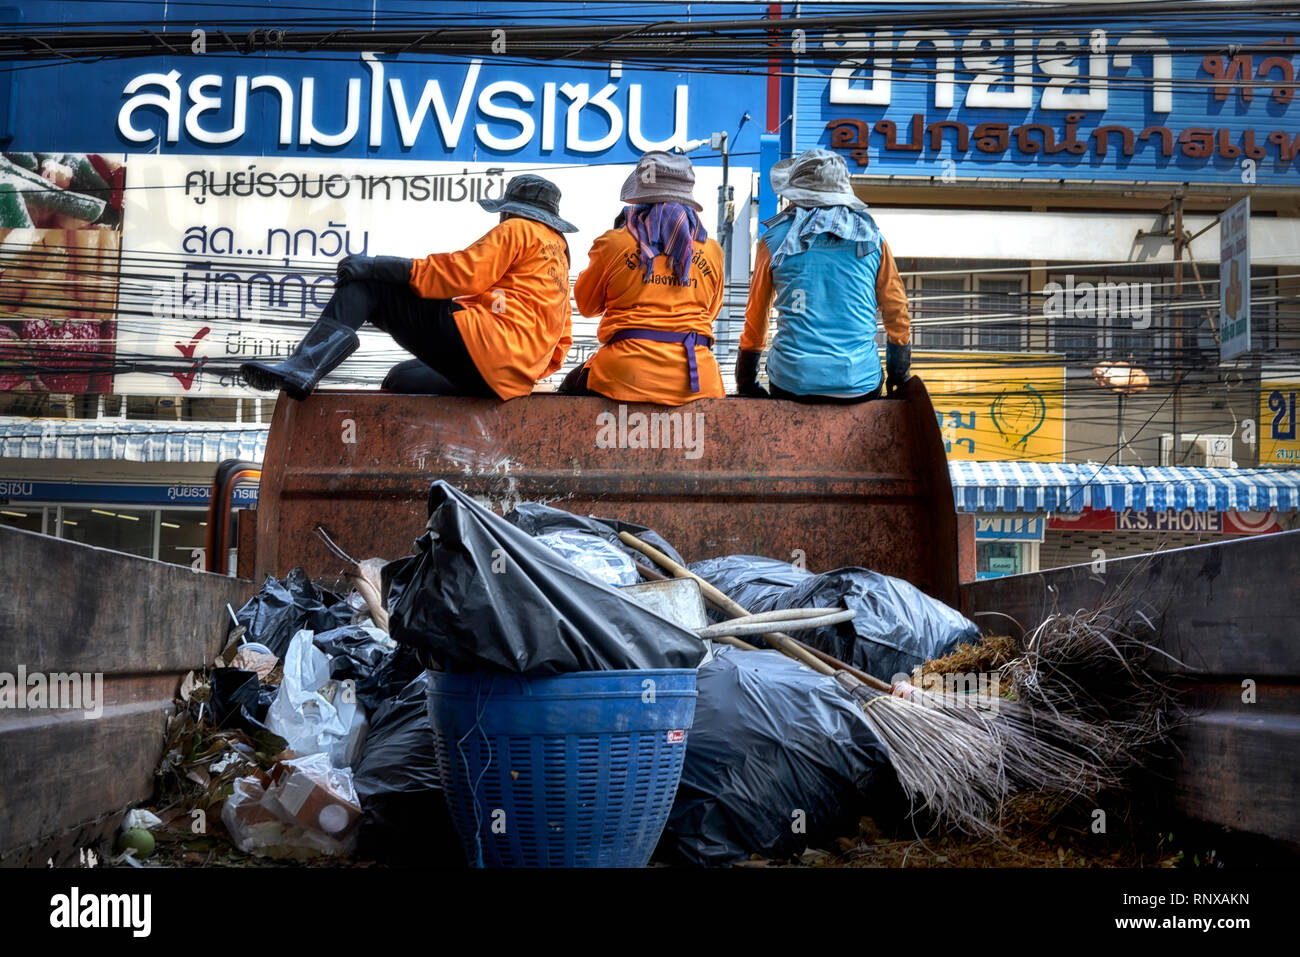 Rubbish collection. Female Thai road sweepers sat atop the refuge collection truck. Thailand, Southeast Asia - Stock Image